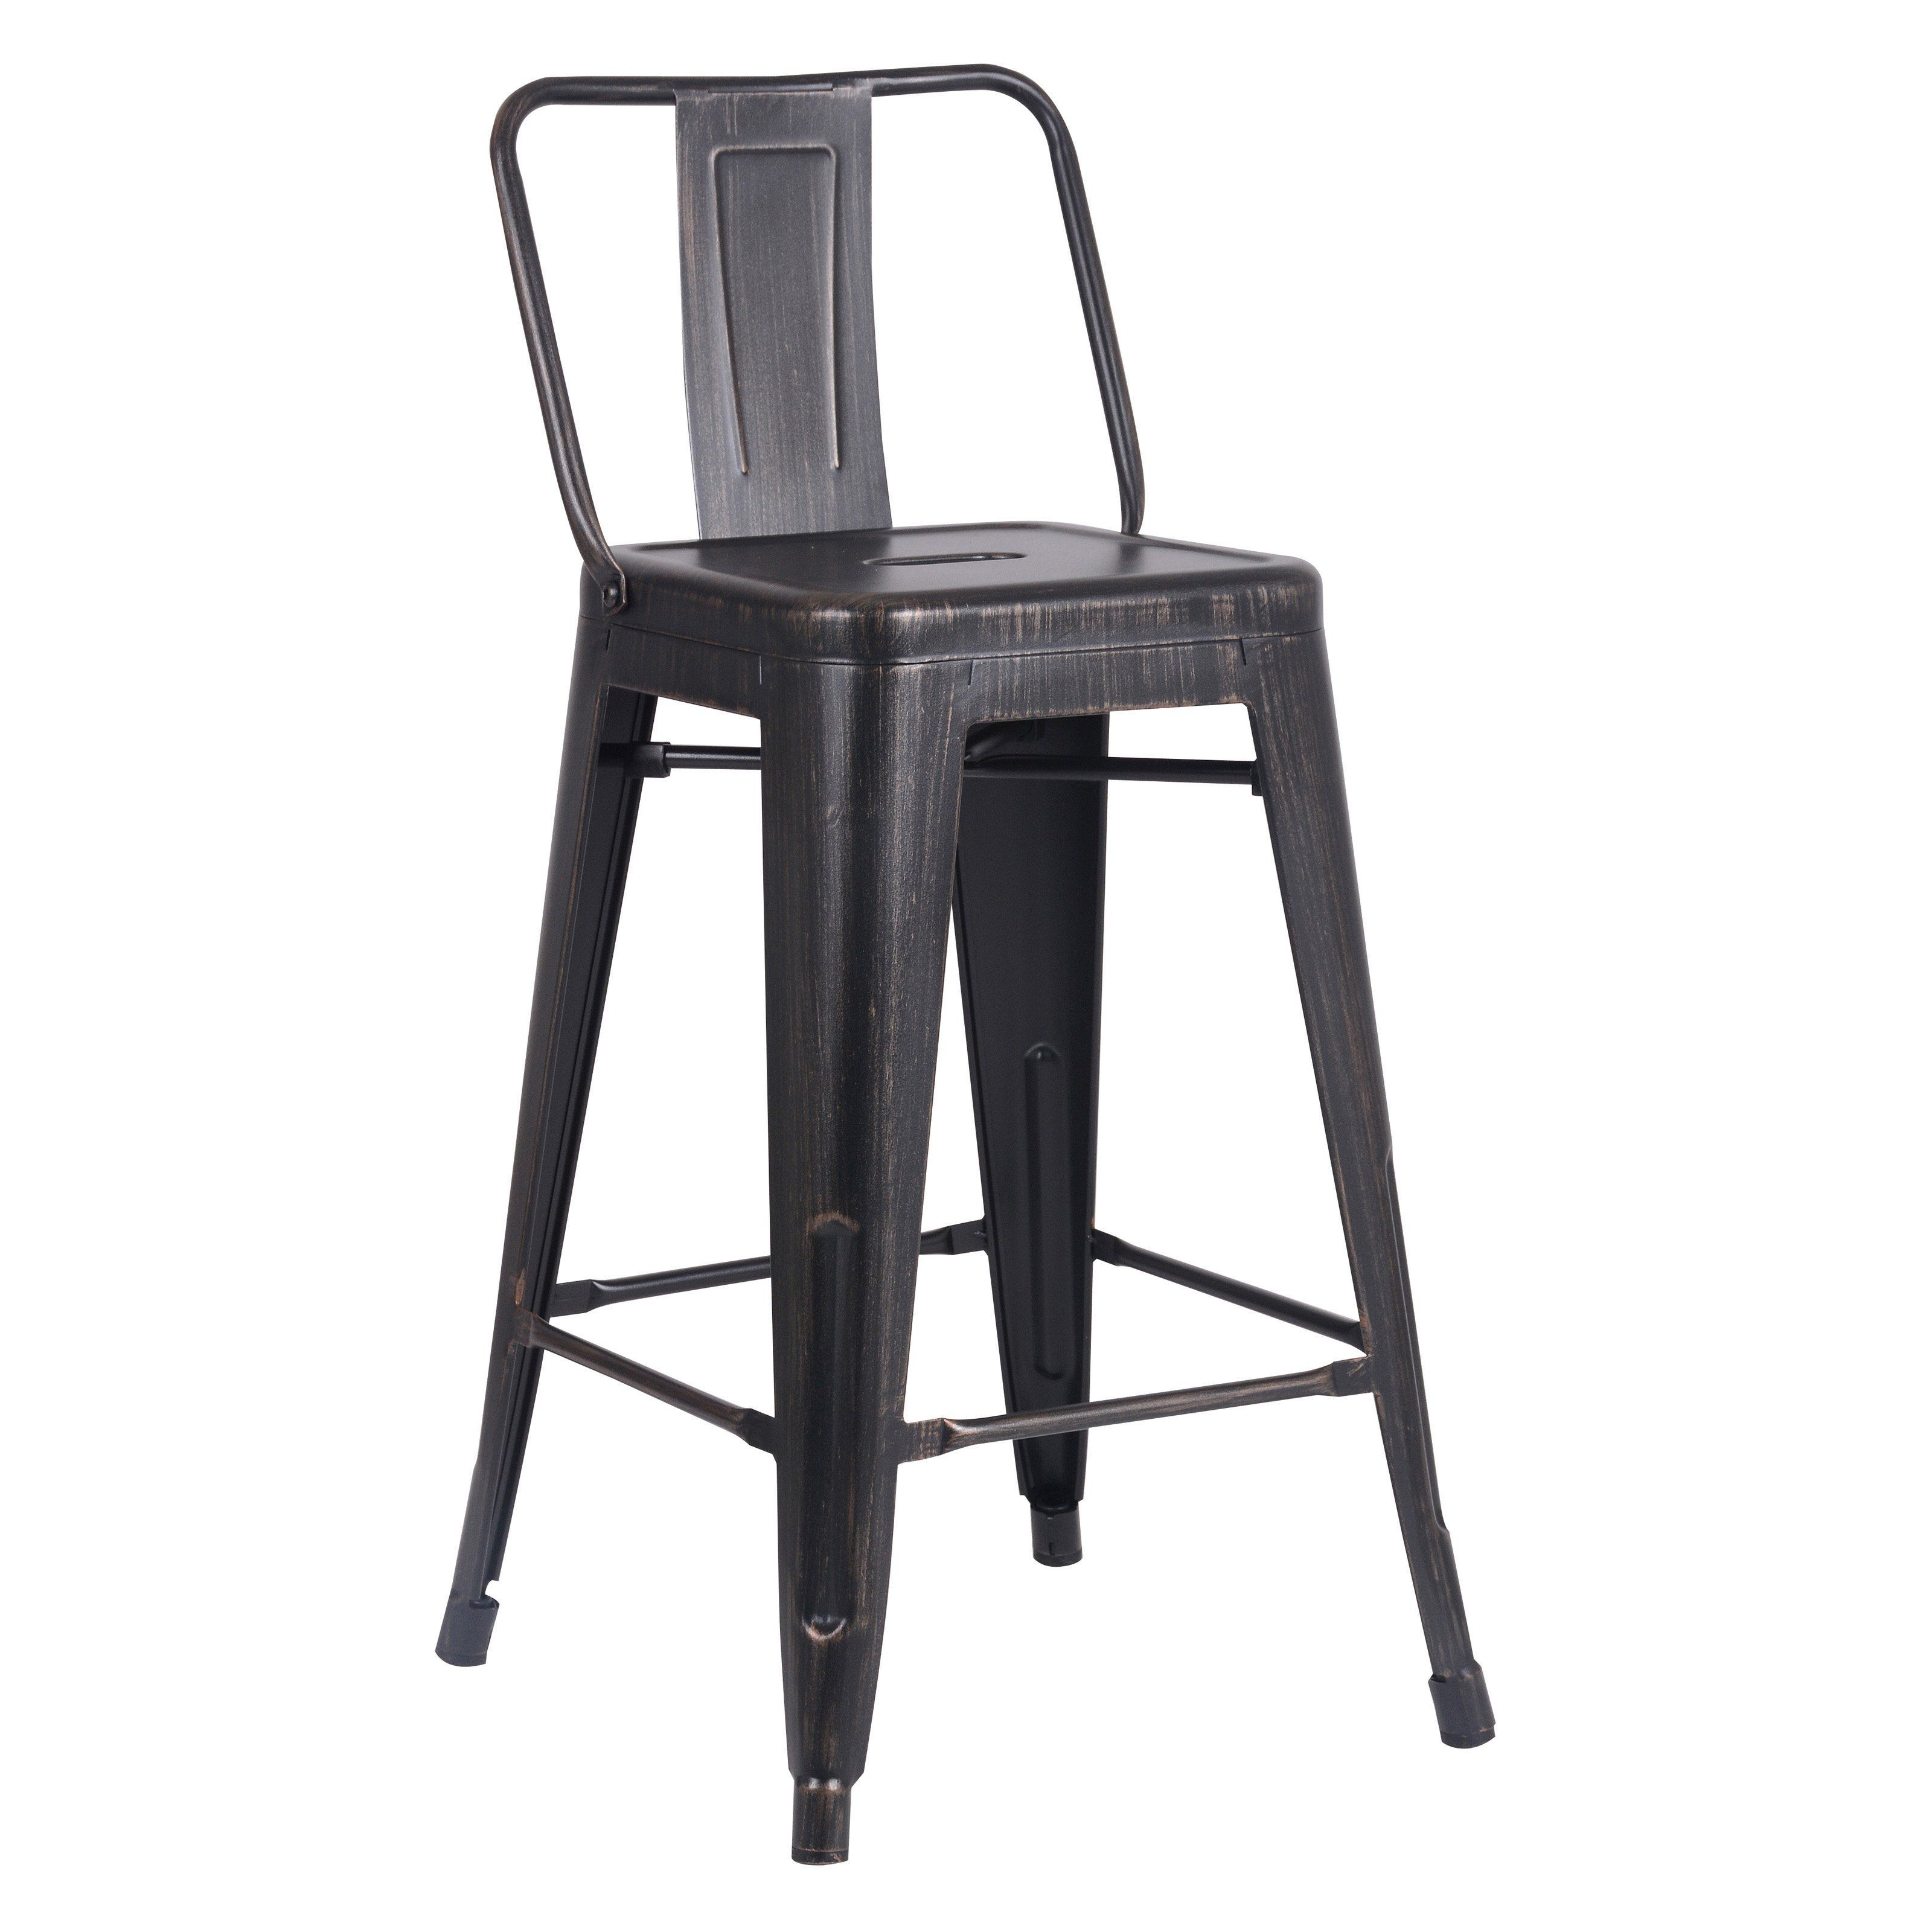 Christies Home Livin Marco Sanded Steel 24 in. Low Back Counter Stool - Set of 2 | from hayneedle.com